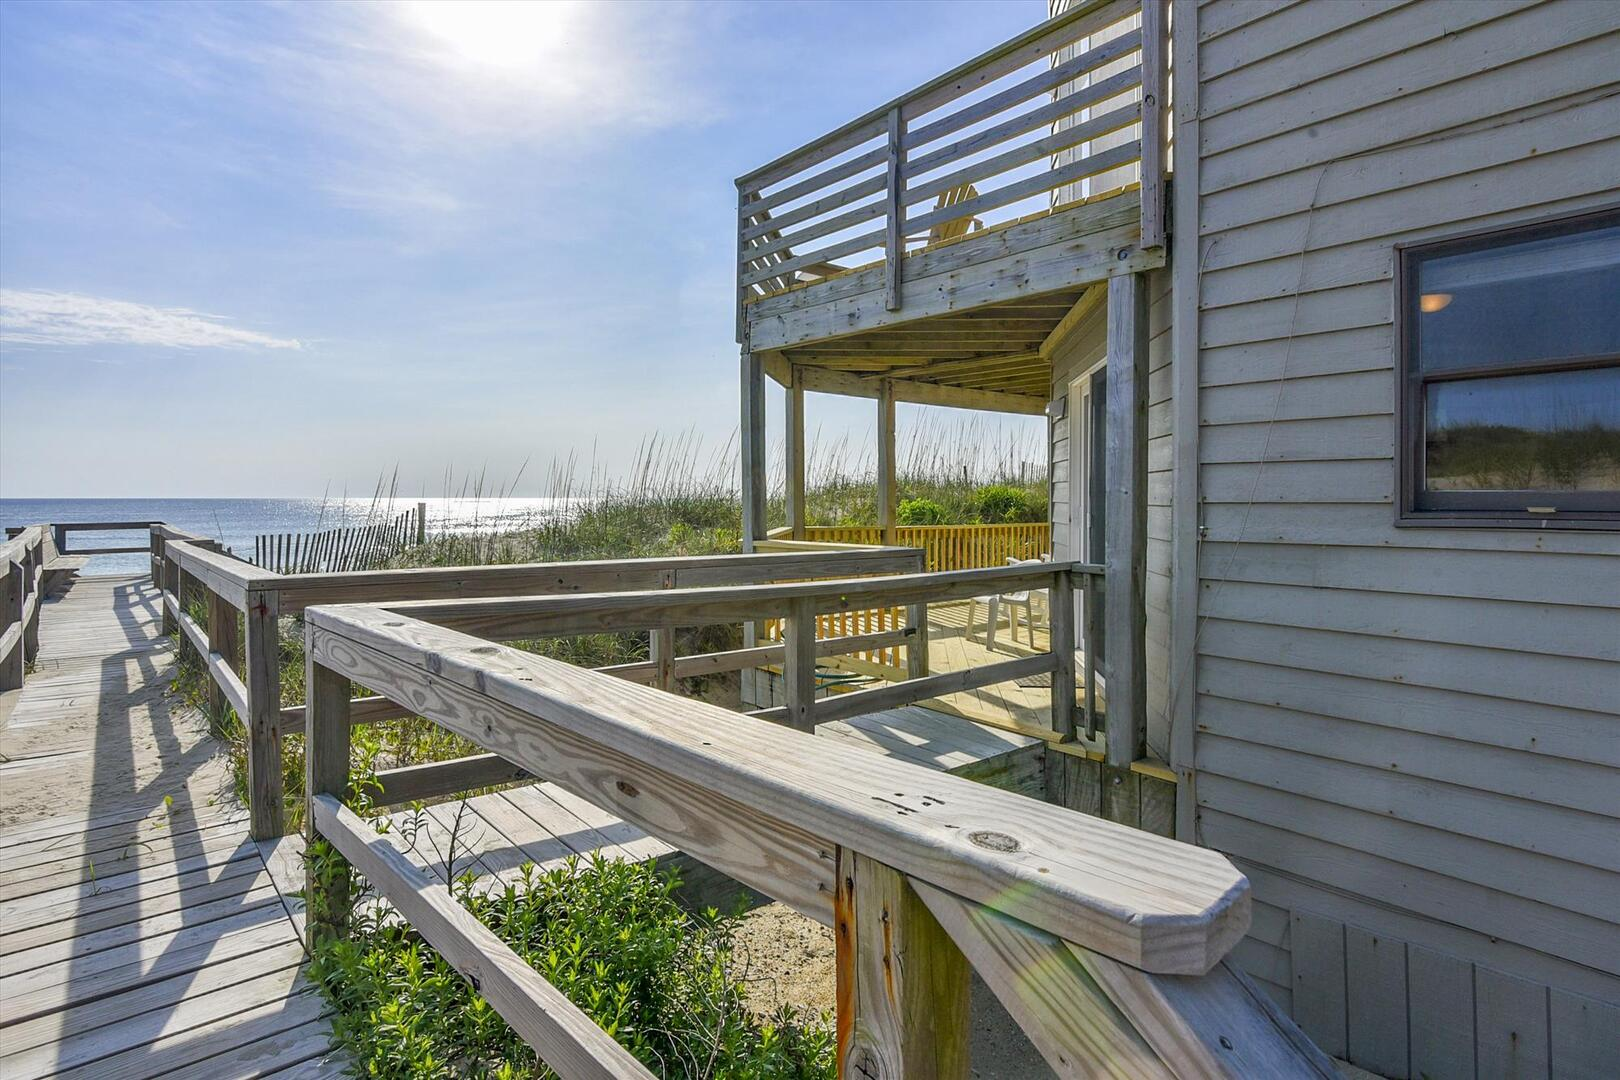 Middle/Entry Level,Beach Access,